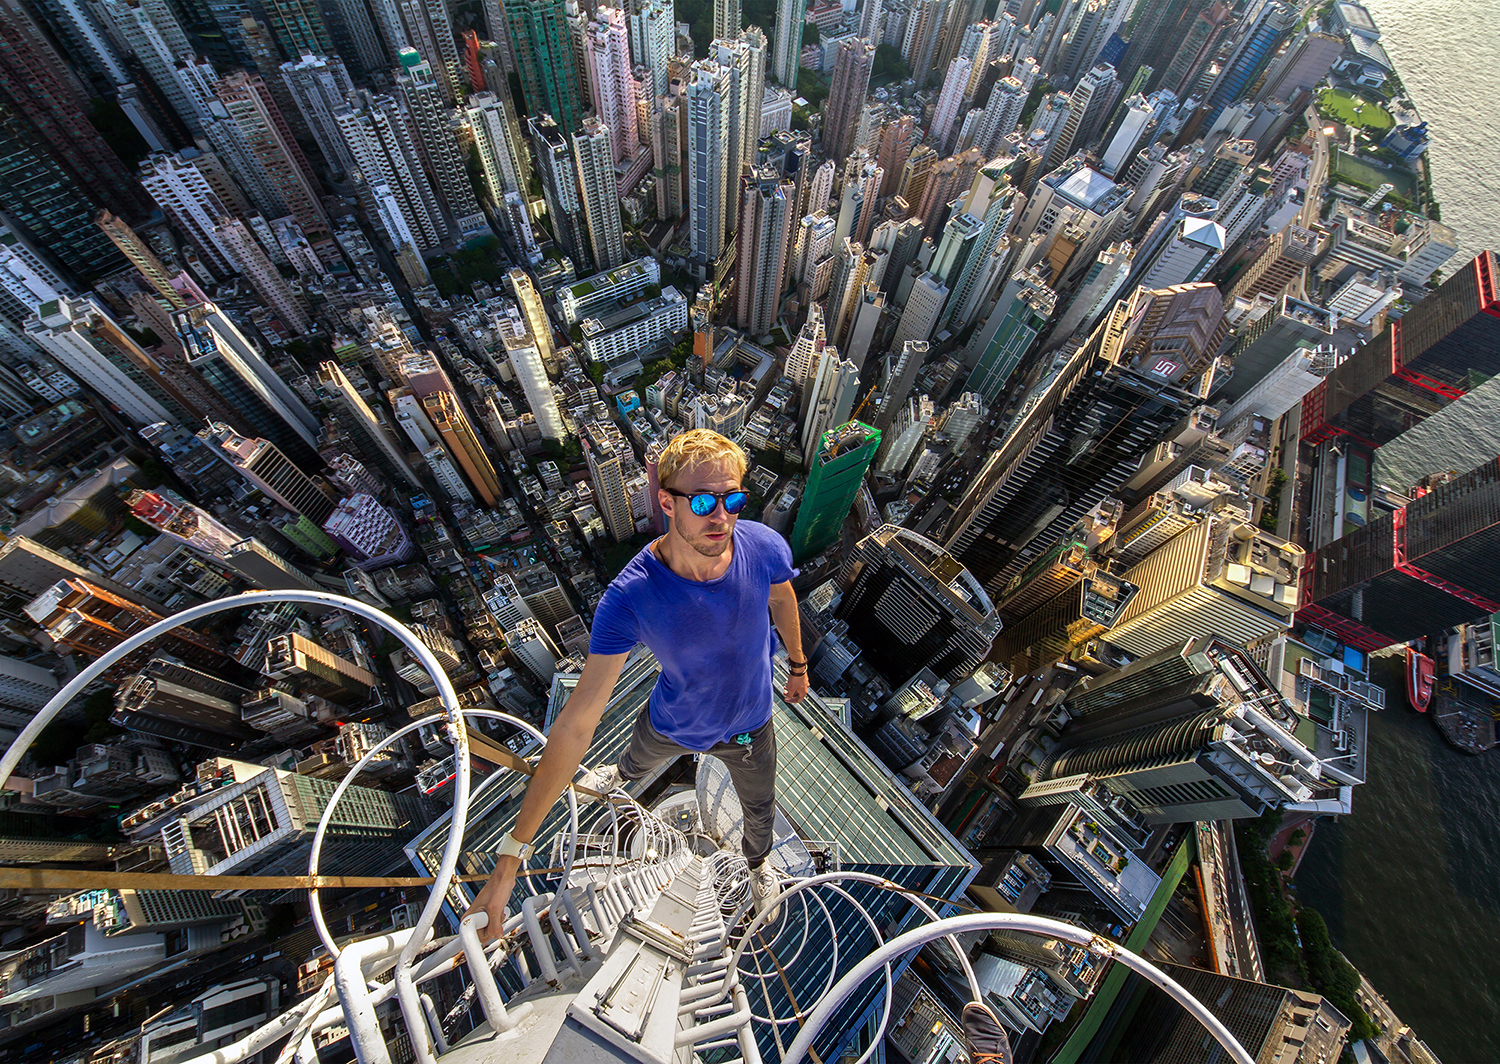 Alexander Remnev (@a_remnev) has been rooftopping for 5 years. Hong Kong August 2014